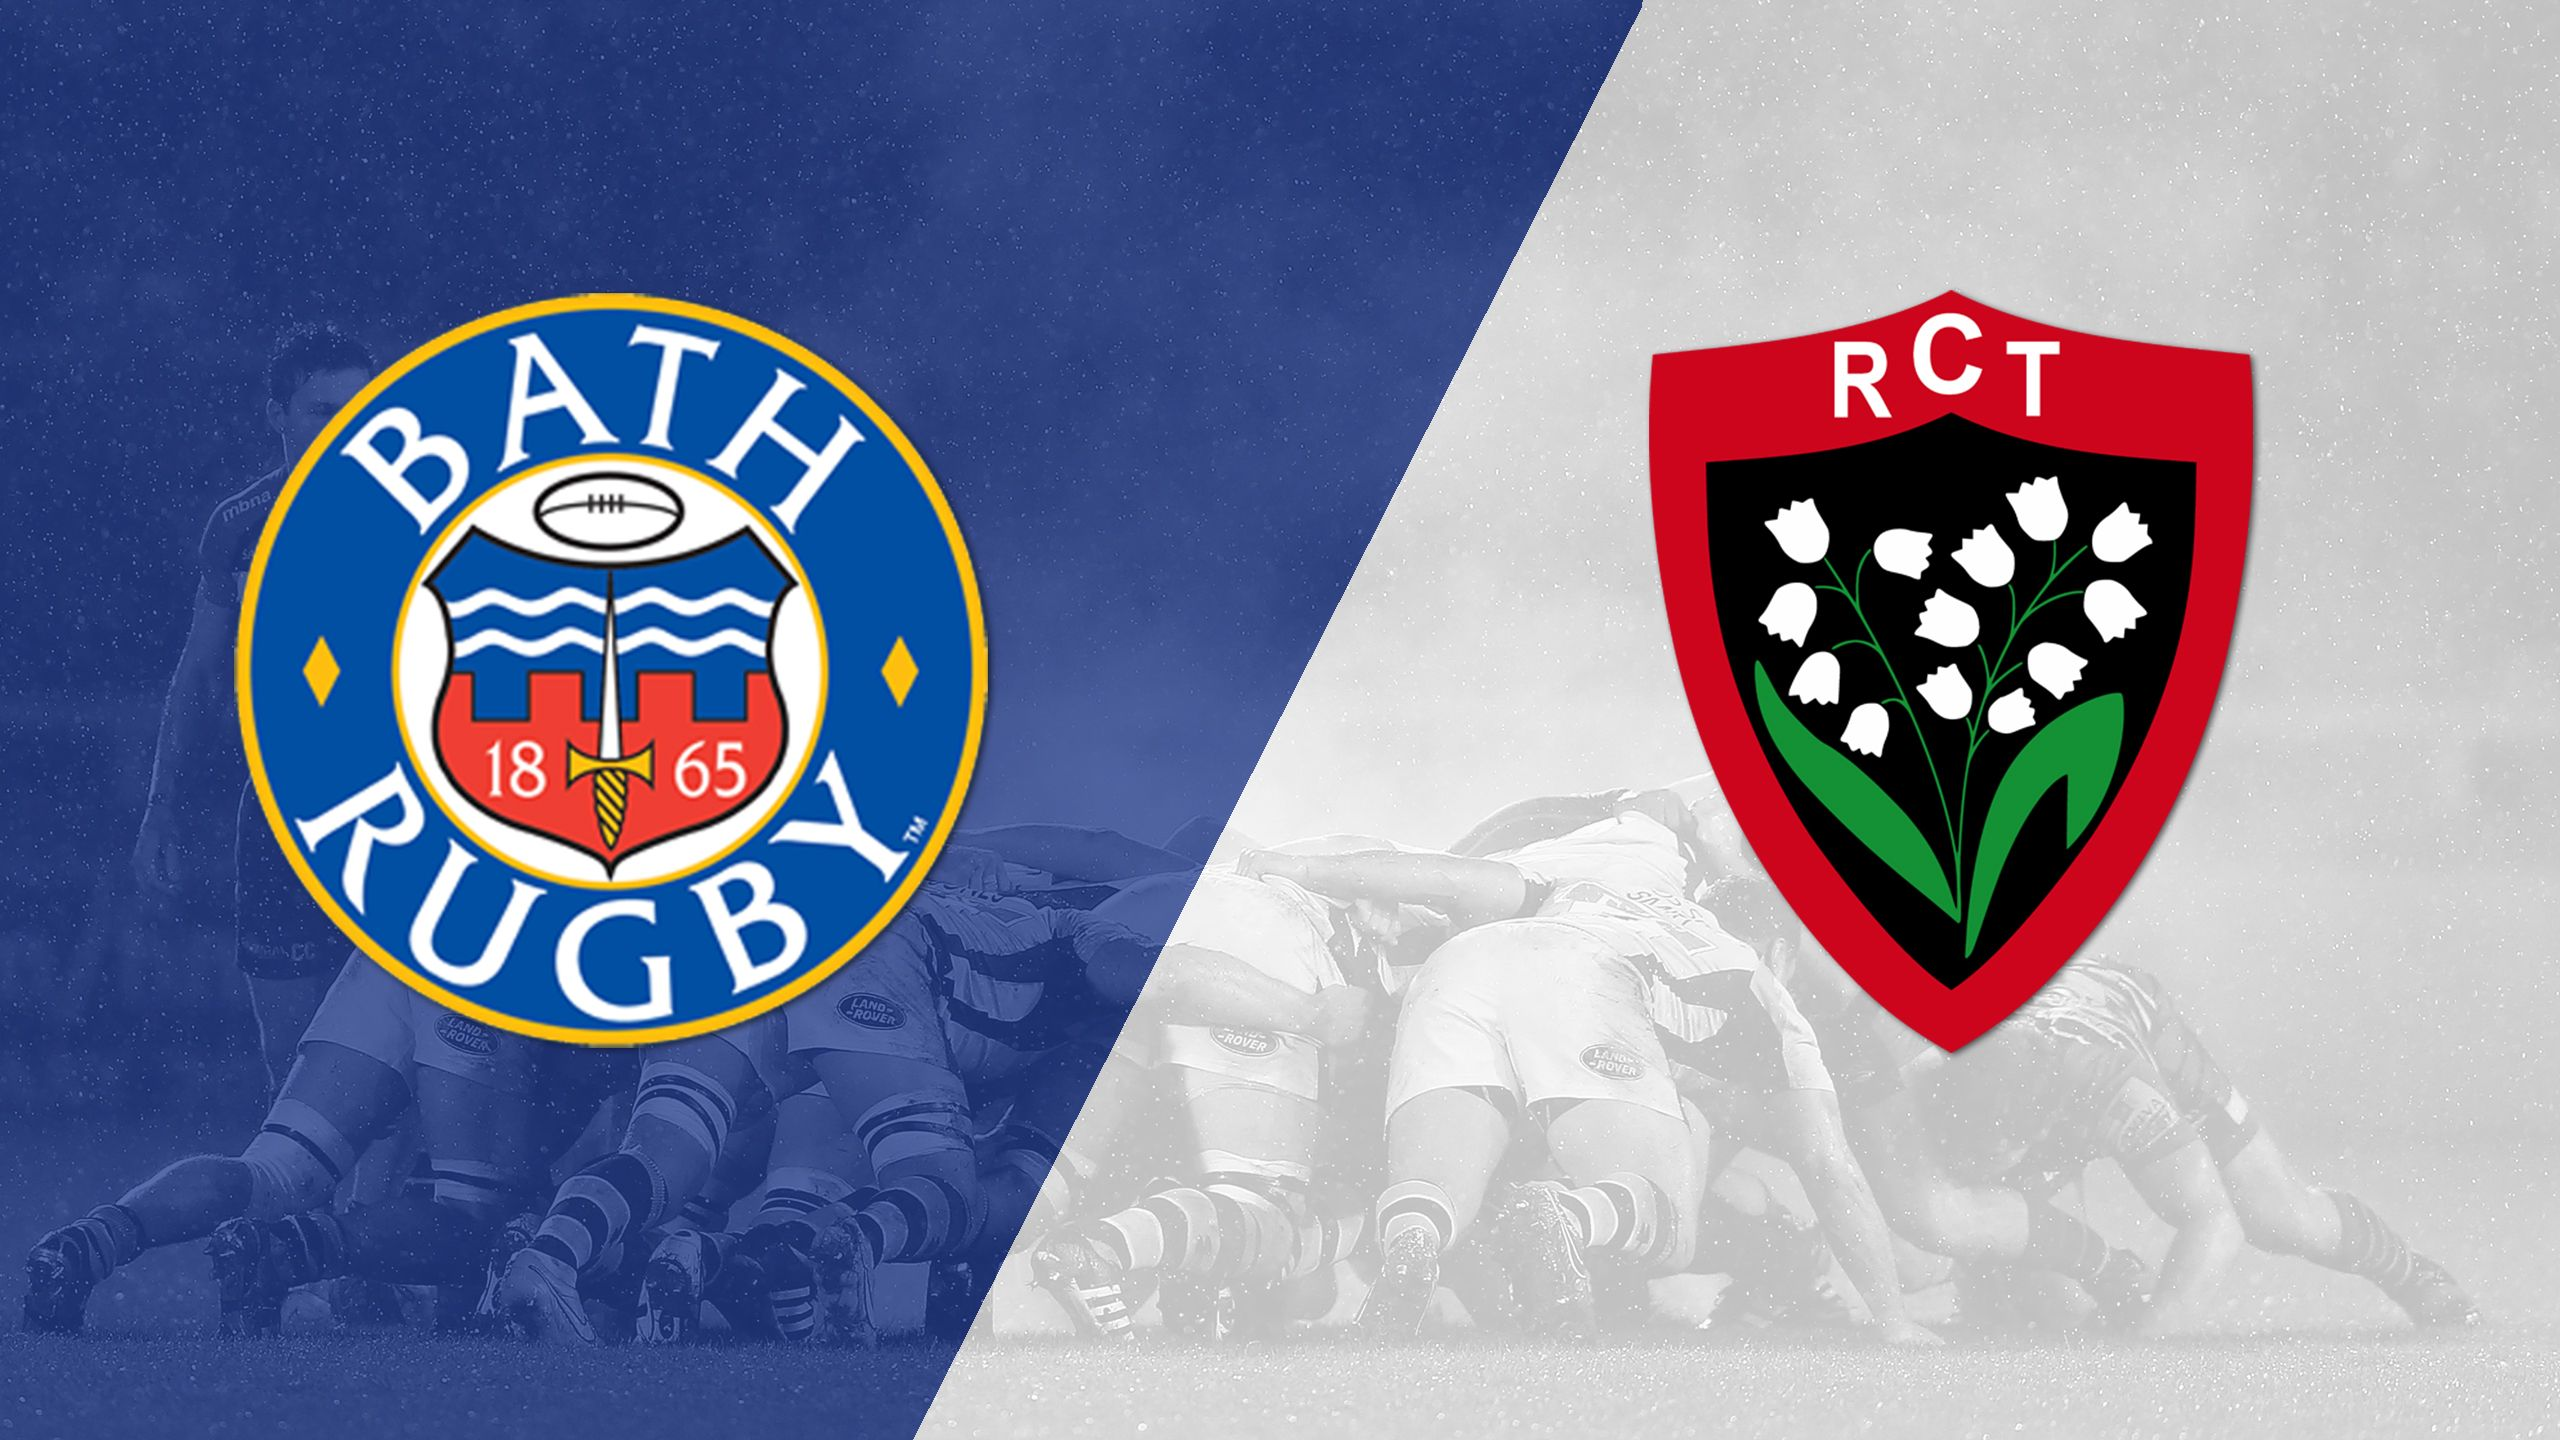 Bath vs. Toulon (Round 4) (European Rugby Champions Cup)